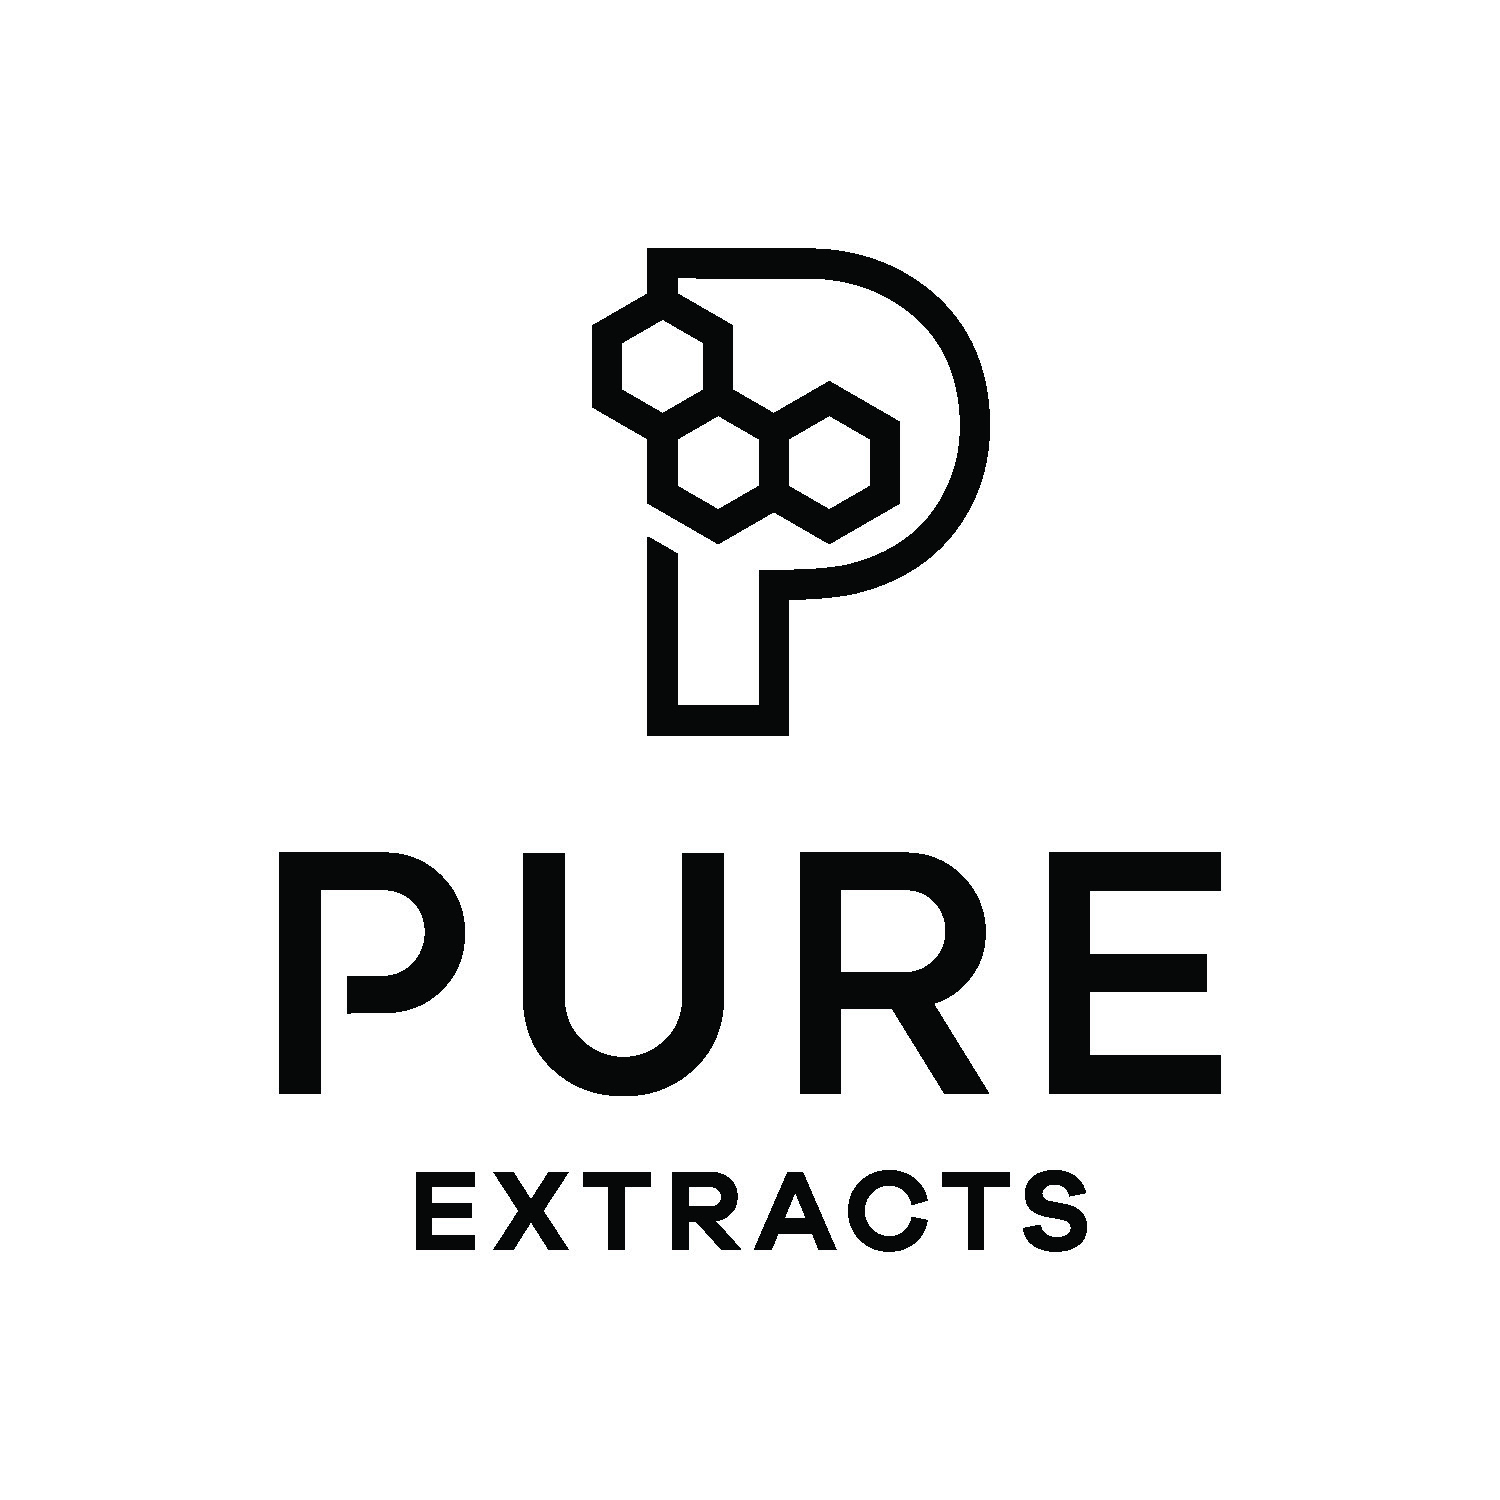 Pure Extracts Preparing Application for Dealers Licence